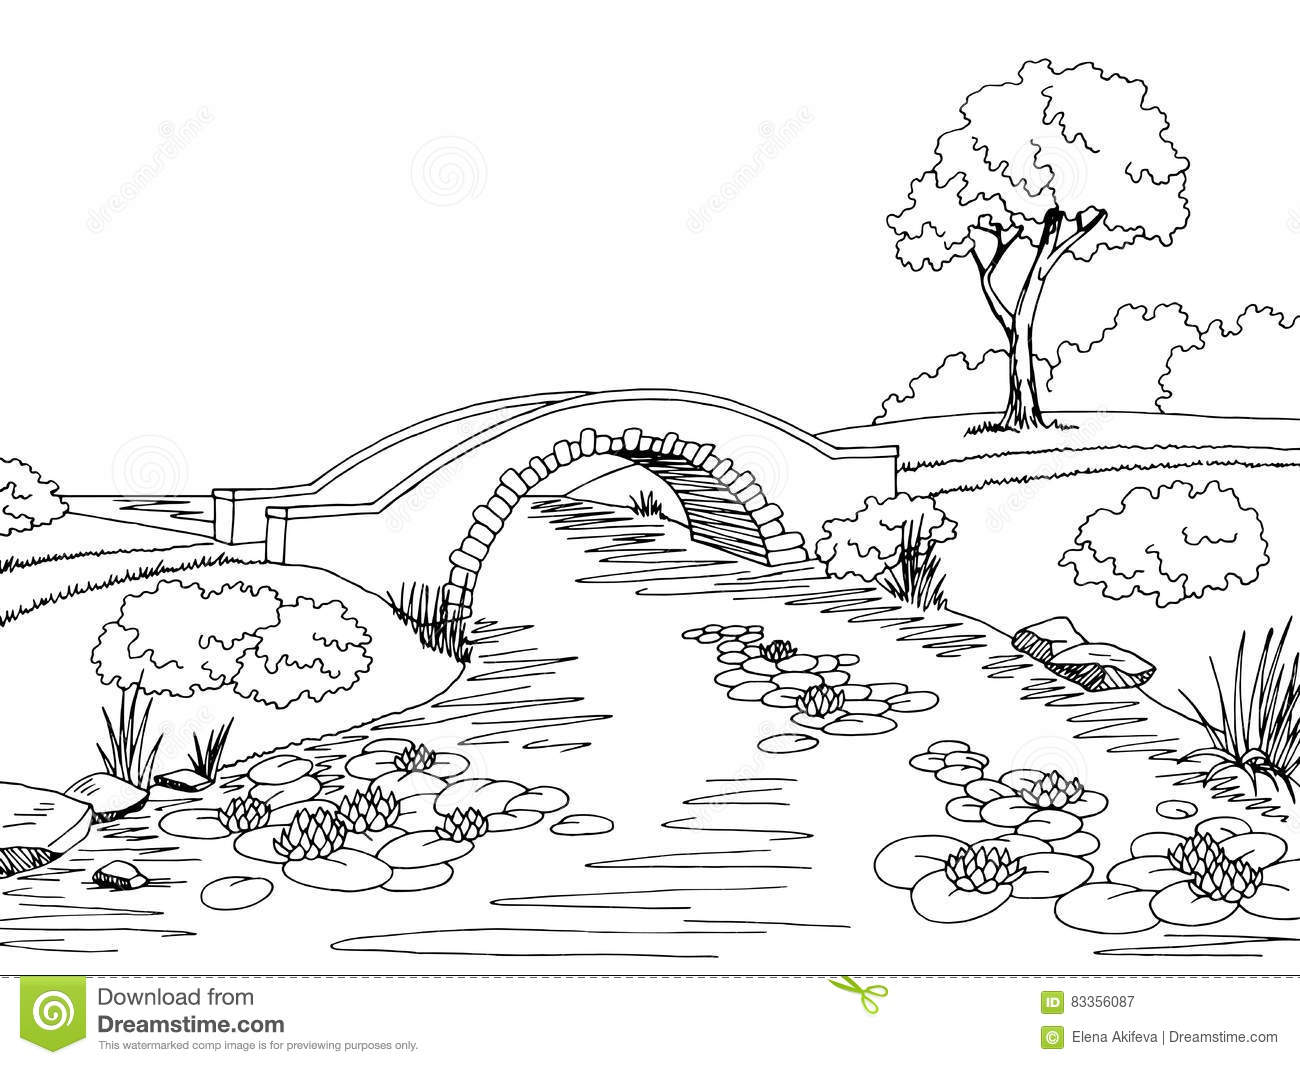 Time Waits For No Man 343325844 together with Cute Schoolhouse Coloring Page 2076 furthermore Circular Tattoo Stencils 2 additionally Stock Illustration Footprints Illustration Leading Distance White Background Image48883289 moreover Galleon 25235. on cartoon black and white outline design of a path